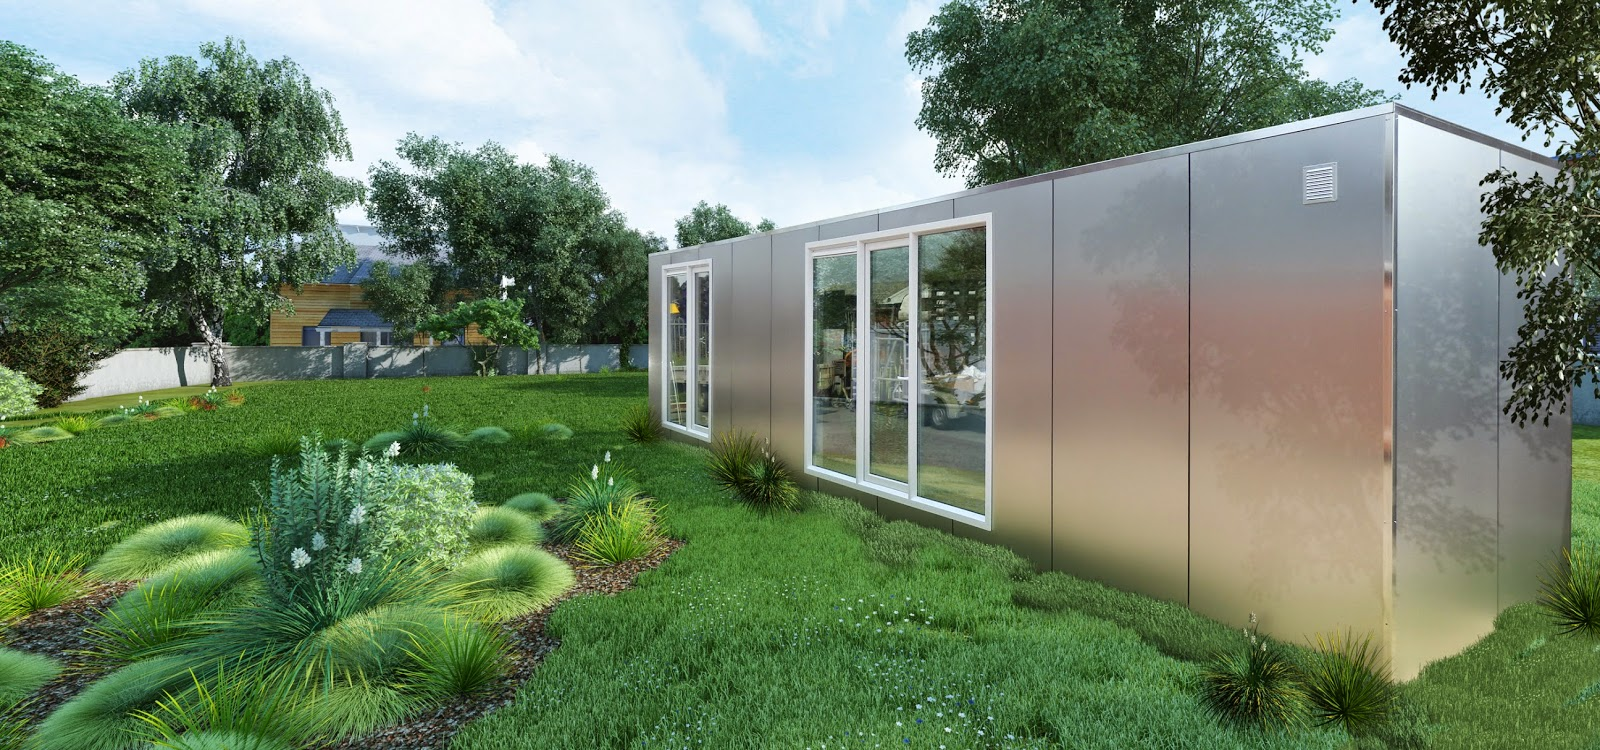 Best Prefab Modular Shipping Container Homes Affordable